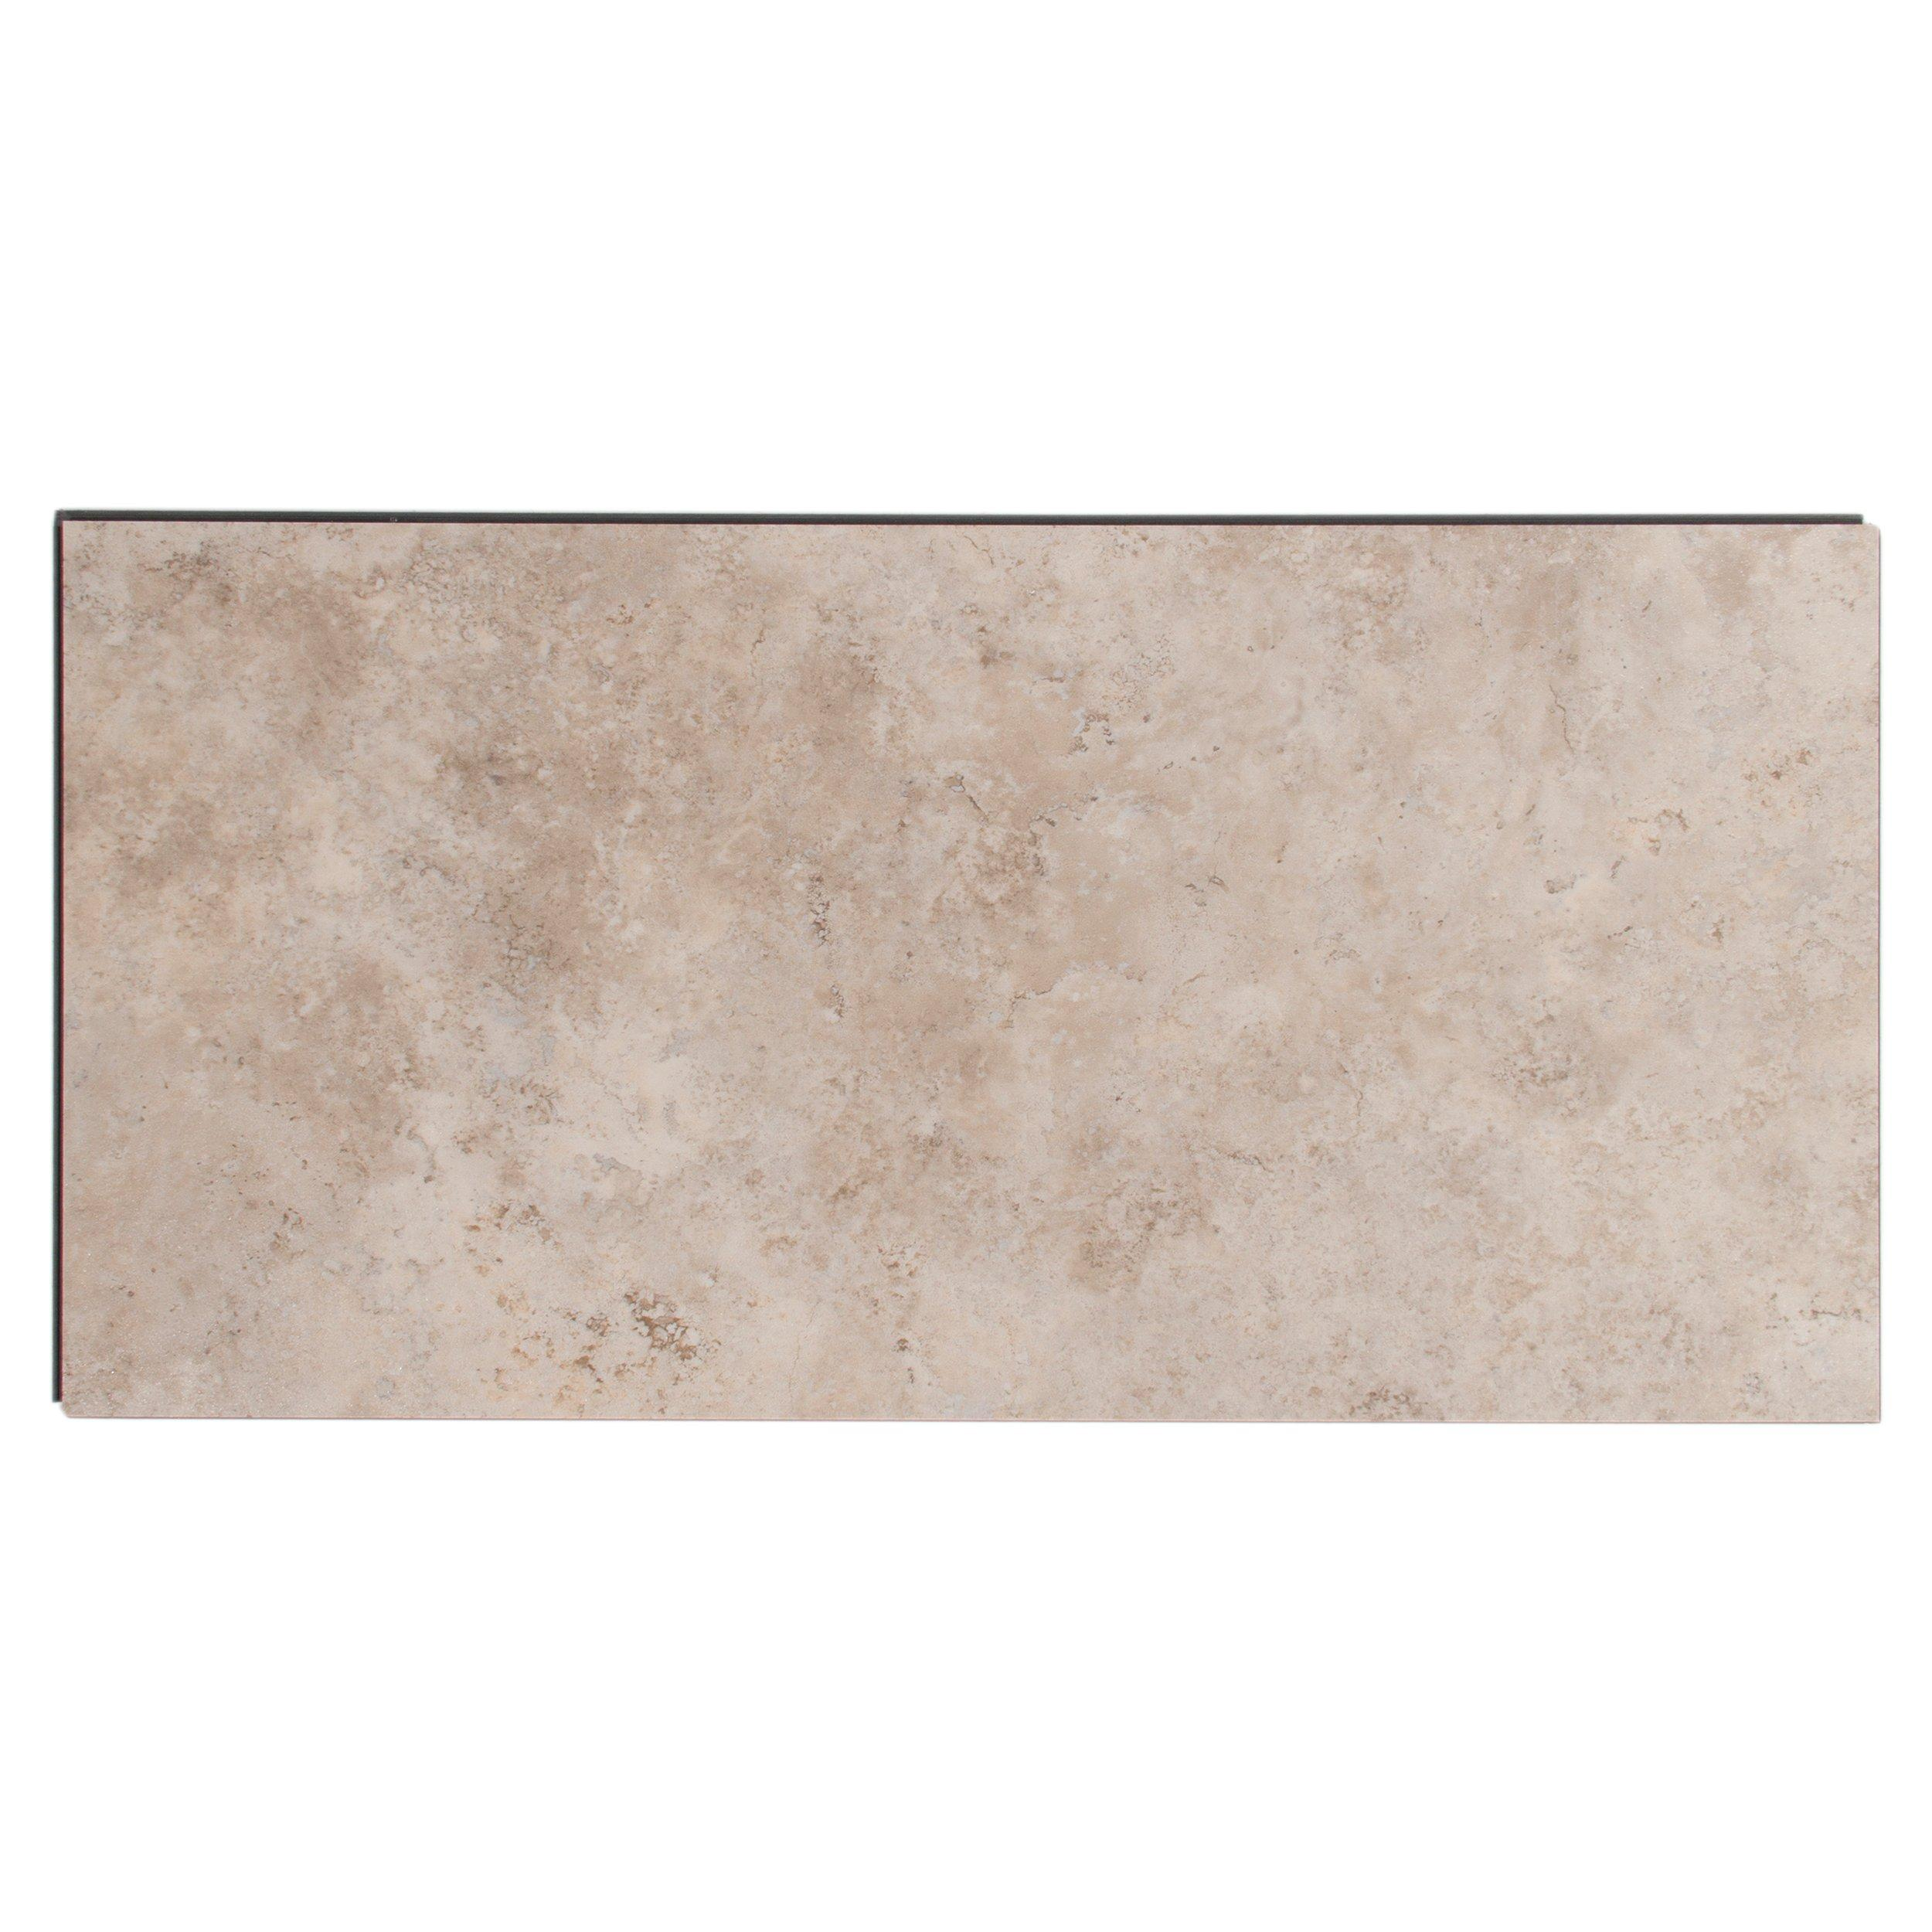 Chiaro Luxury Vinyl Tile - 12in. x 24in. - 100378033 | Floor and Decor